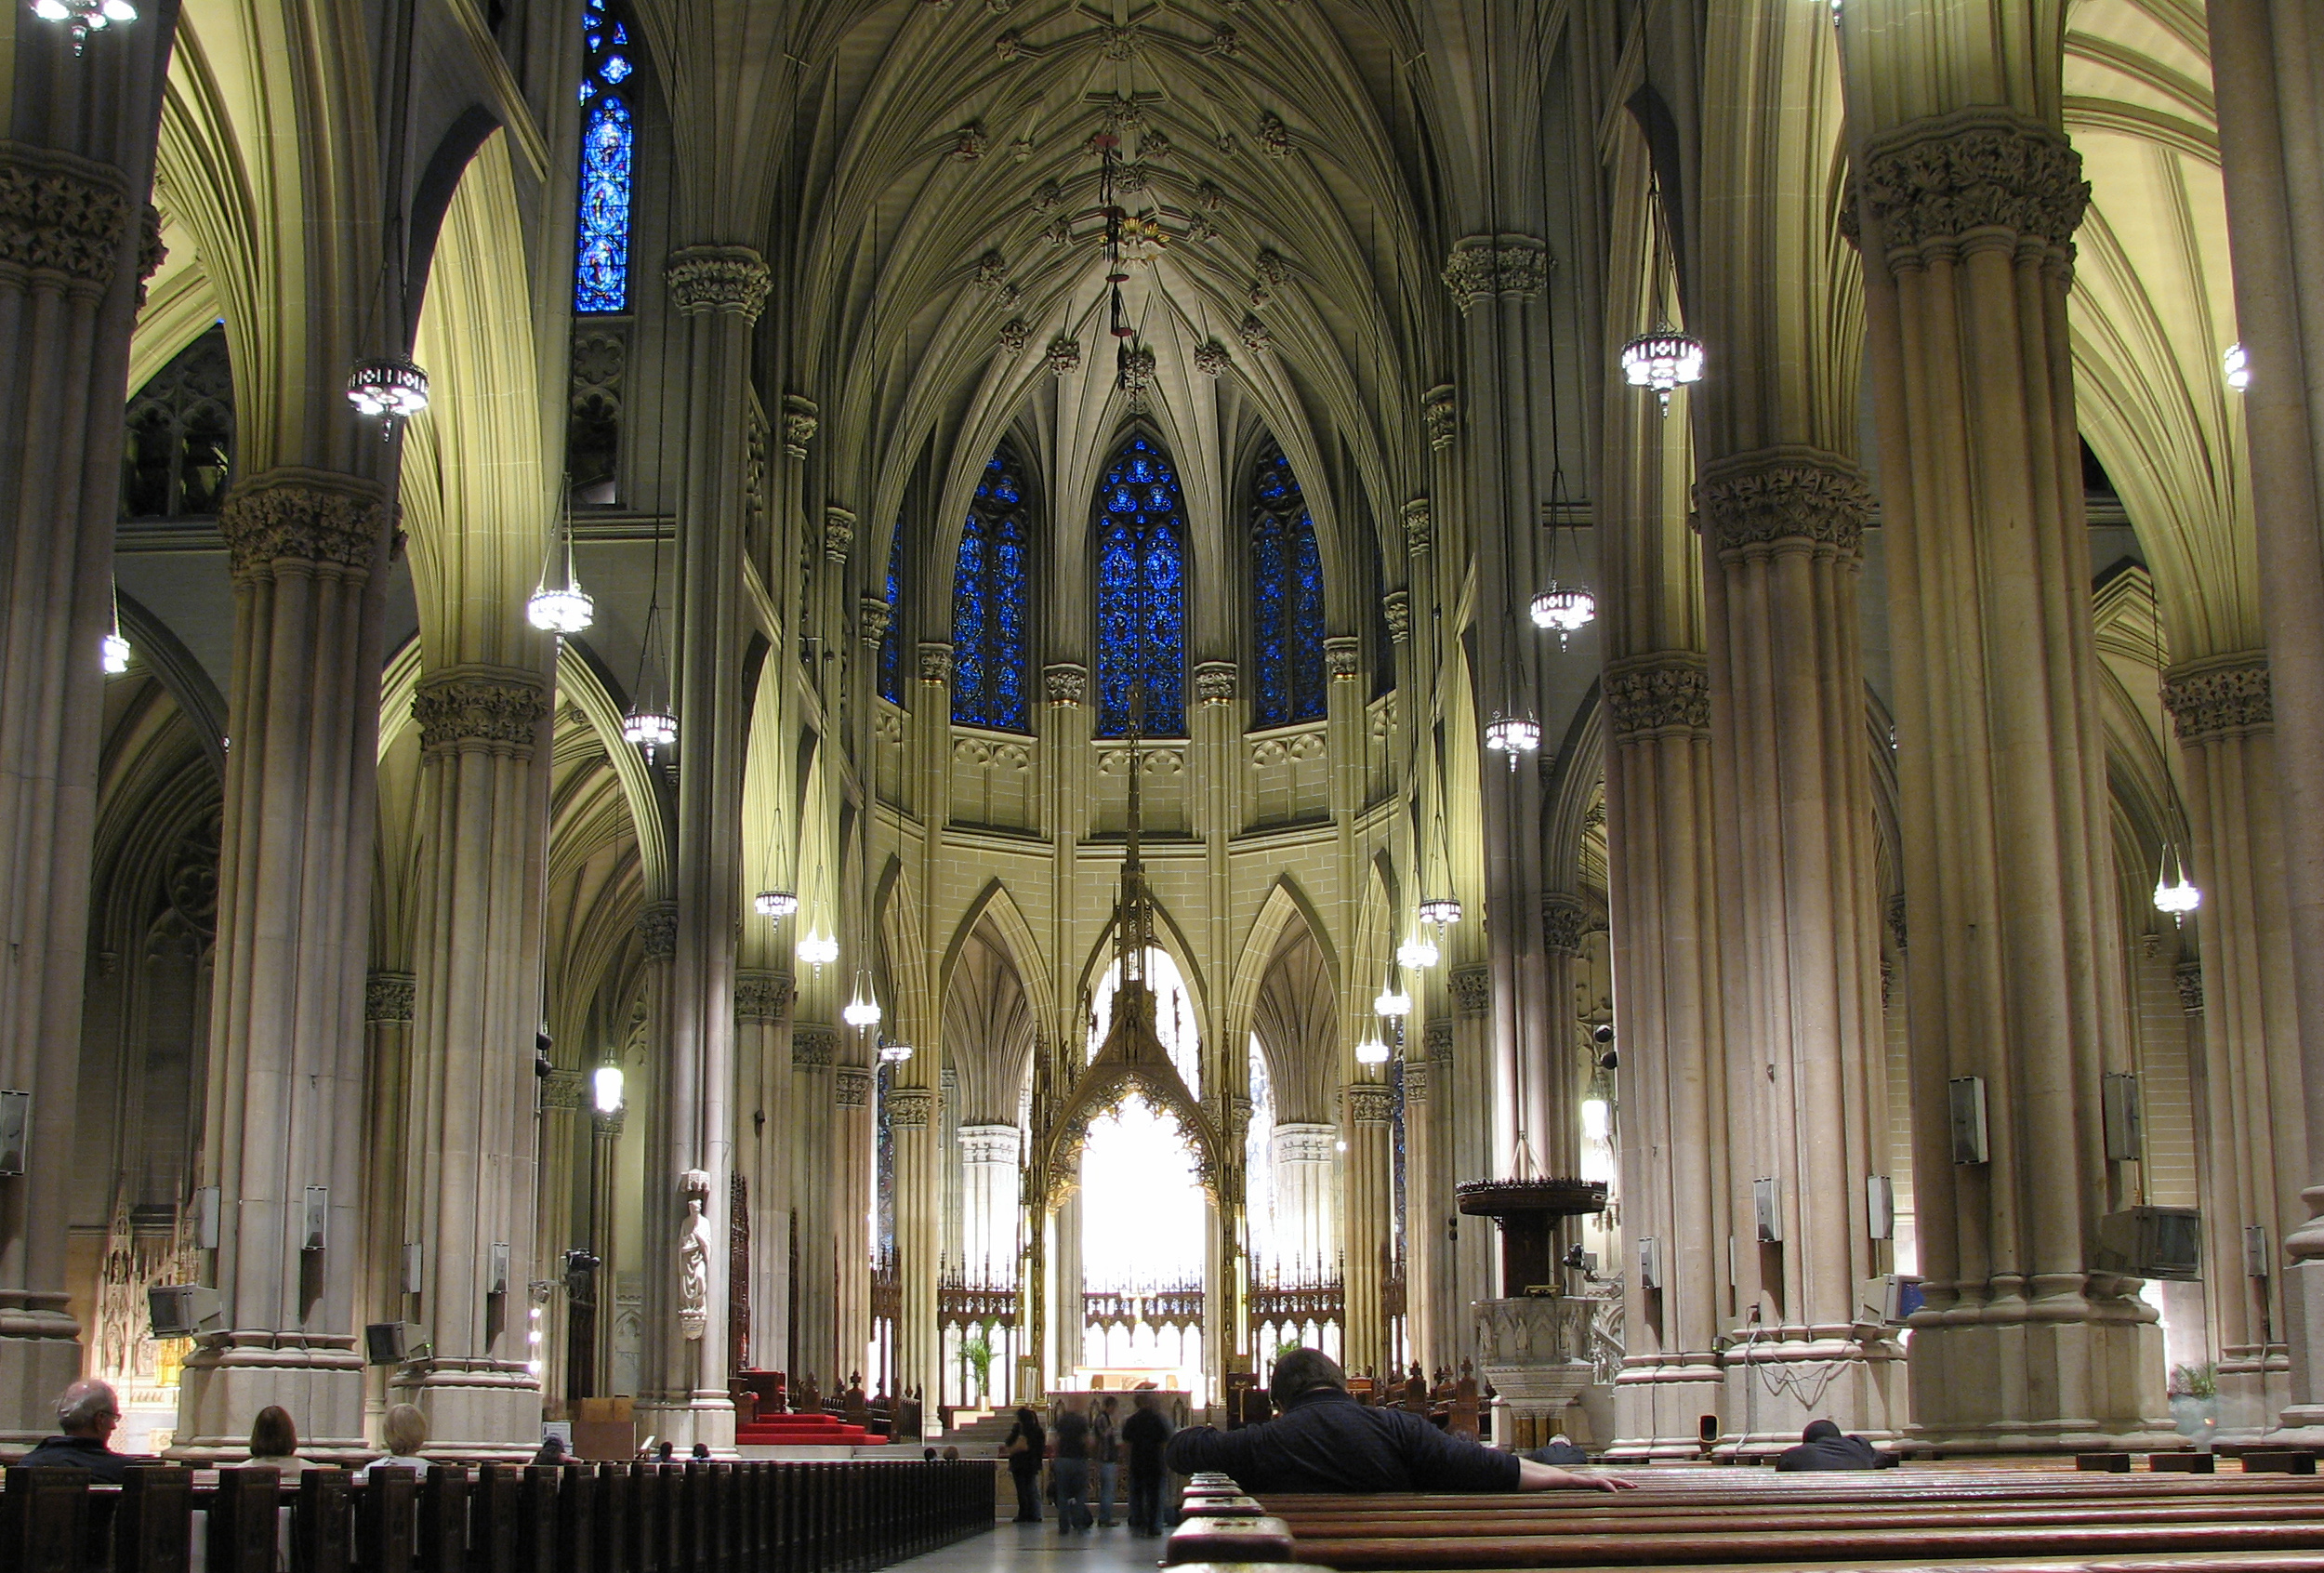 Amazing Aerial And Interior Photos Of St Patrick S Cathedral In New York Places Boomsbeat